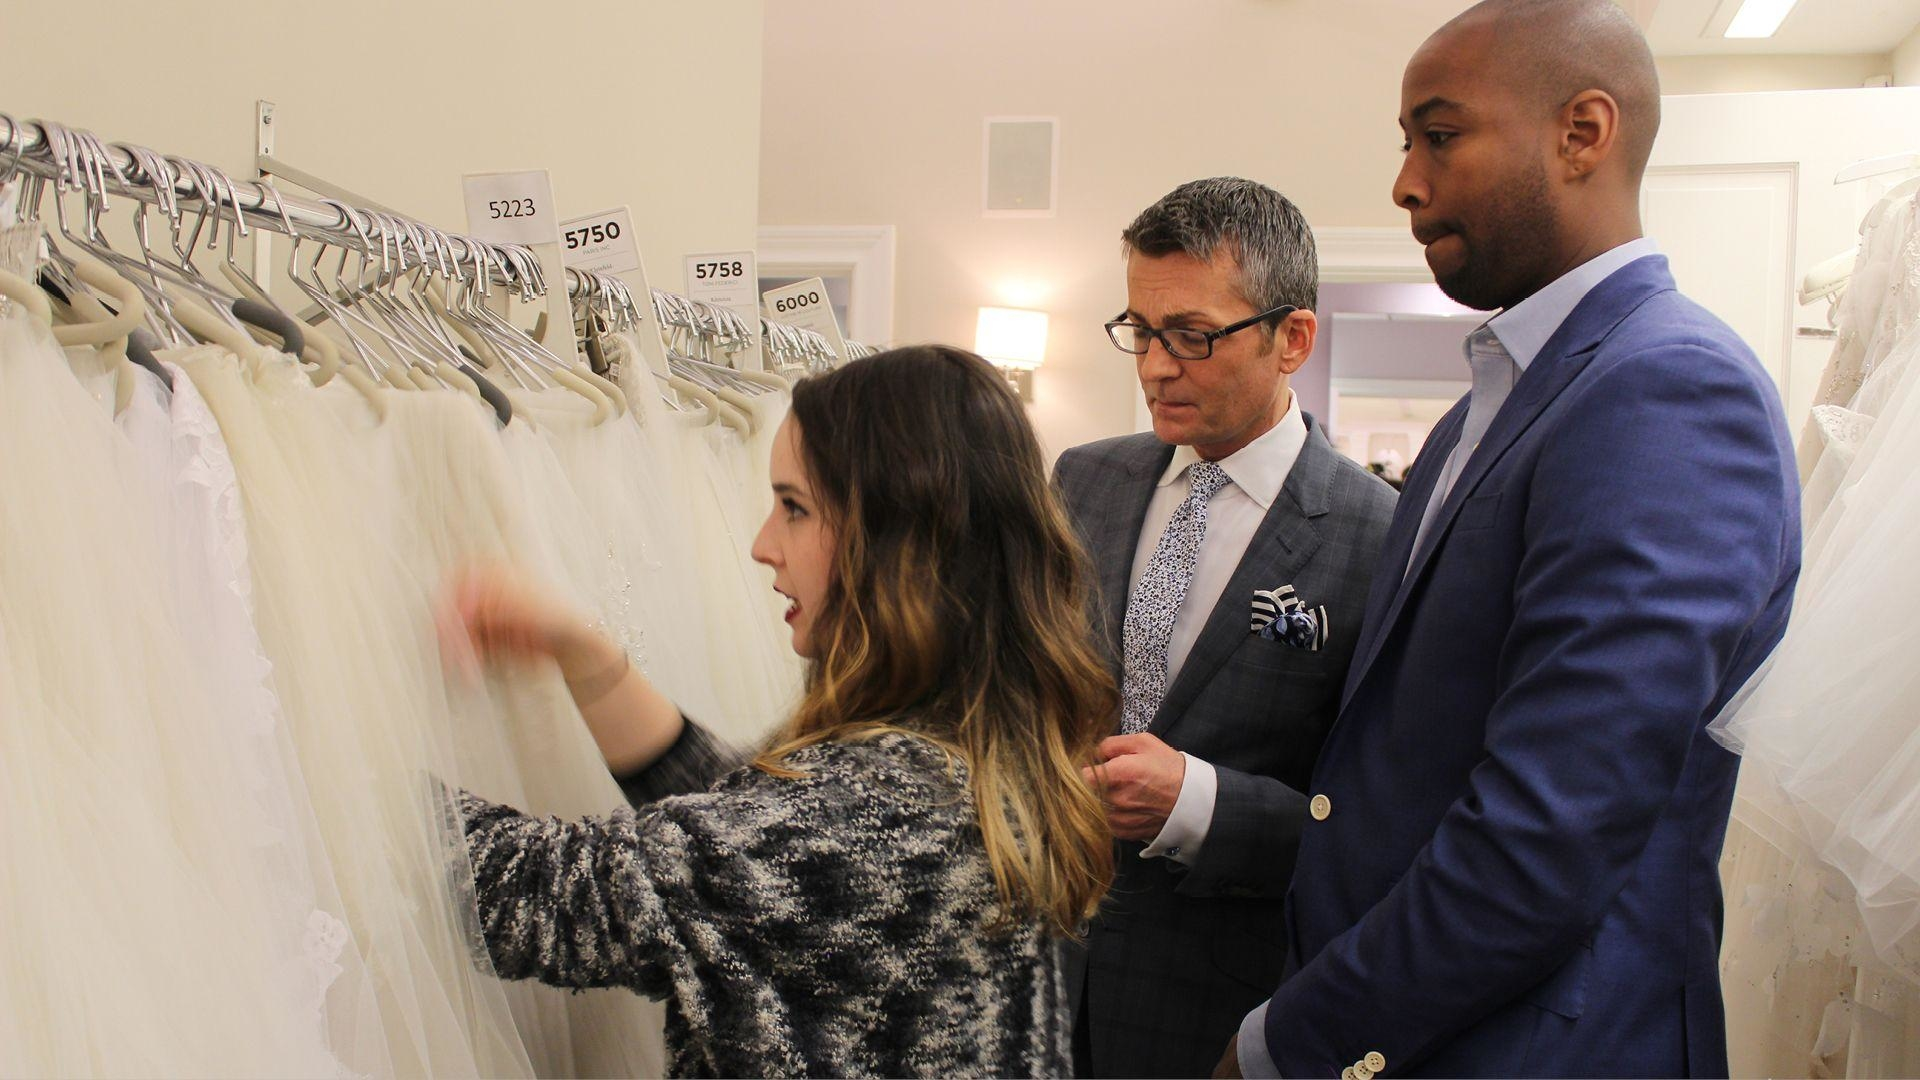 Say Yes To The Dress: Randy Fenoli Shares His Bridal Shopping Mantras